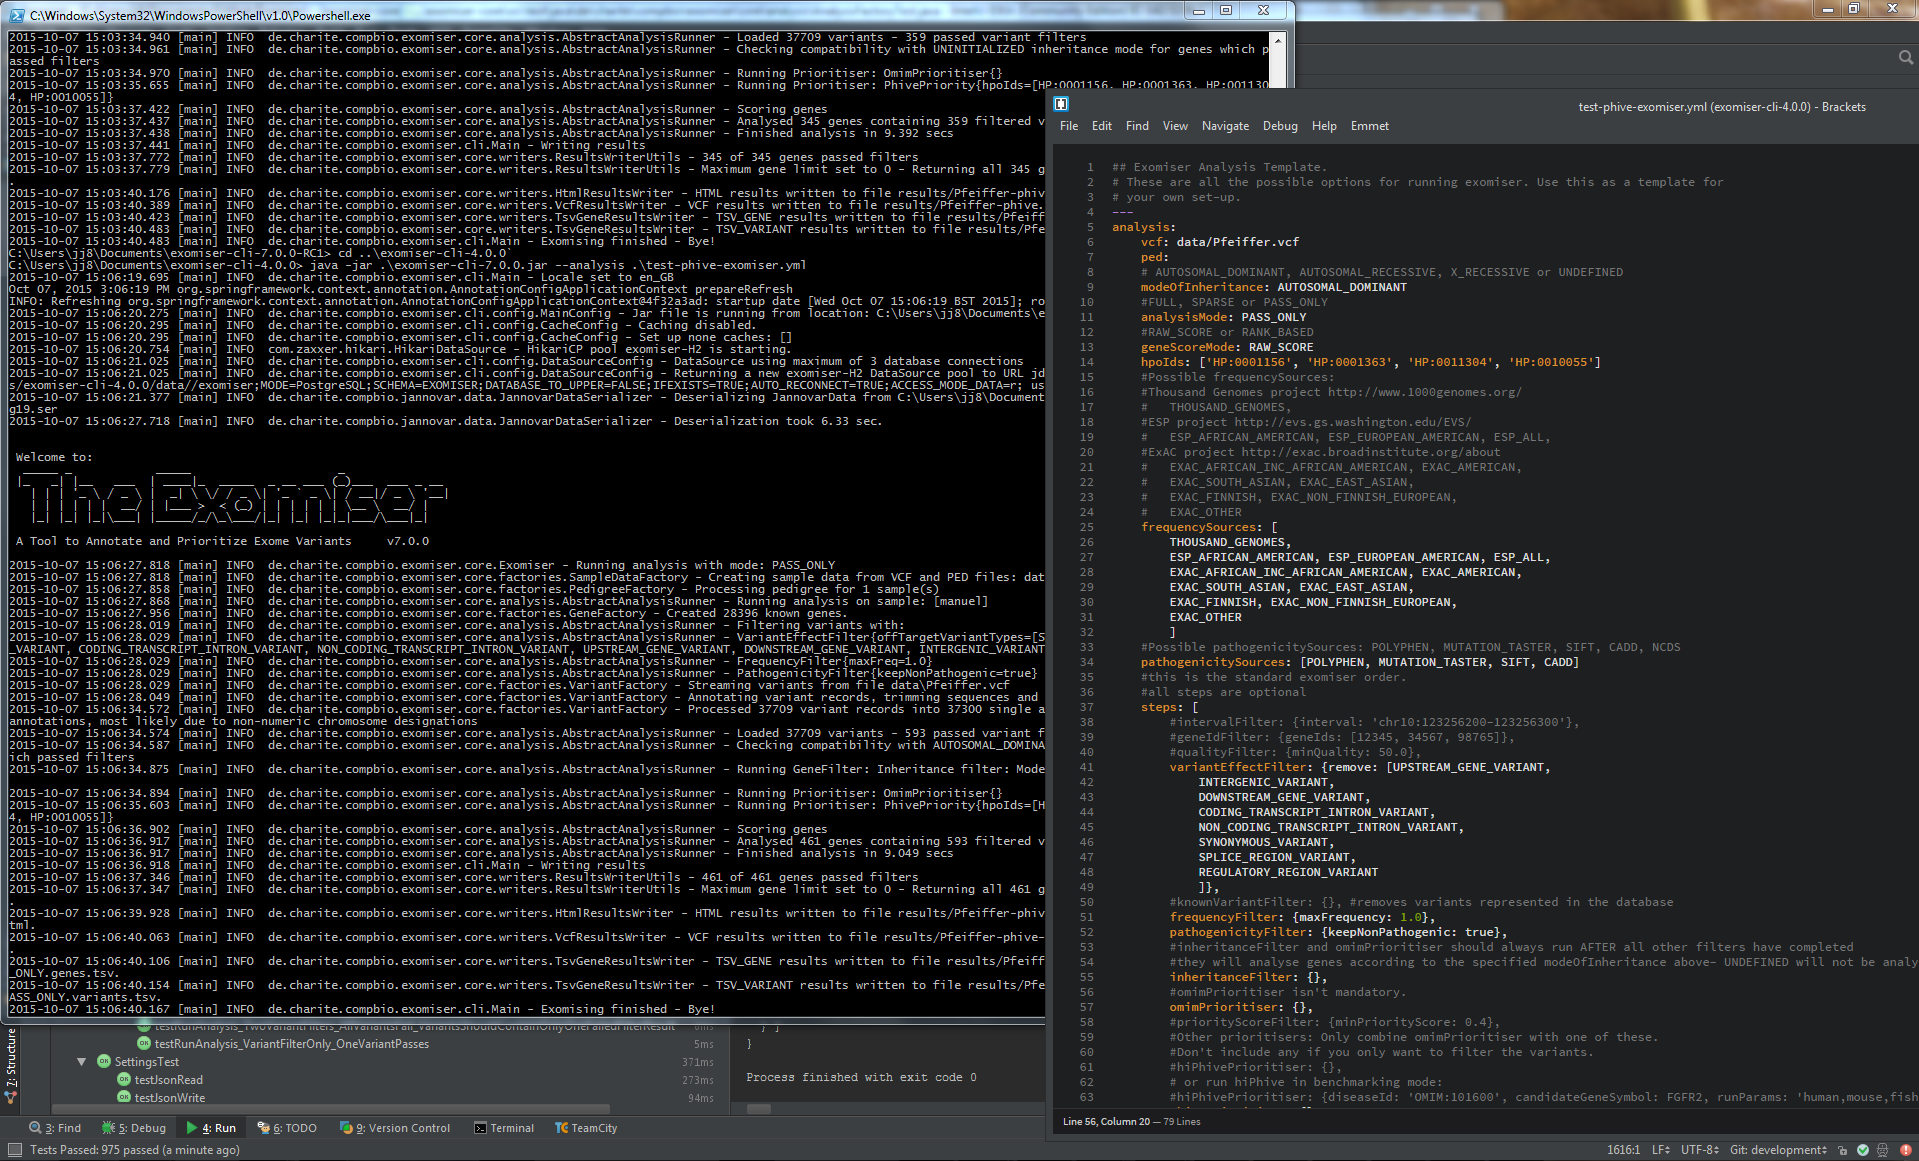 Screenshot of the Exomiser running on a test dataset from the command-line along with the accompanying YAML configuration file used for the analysis.